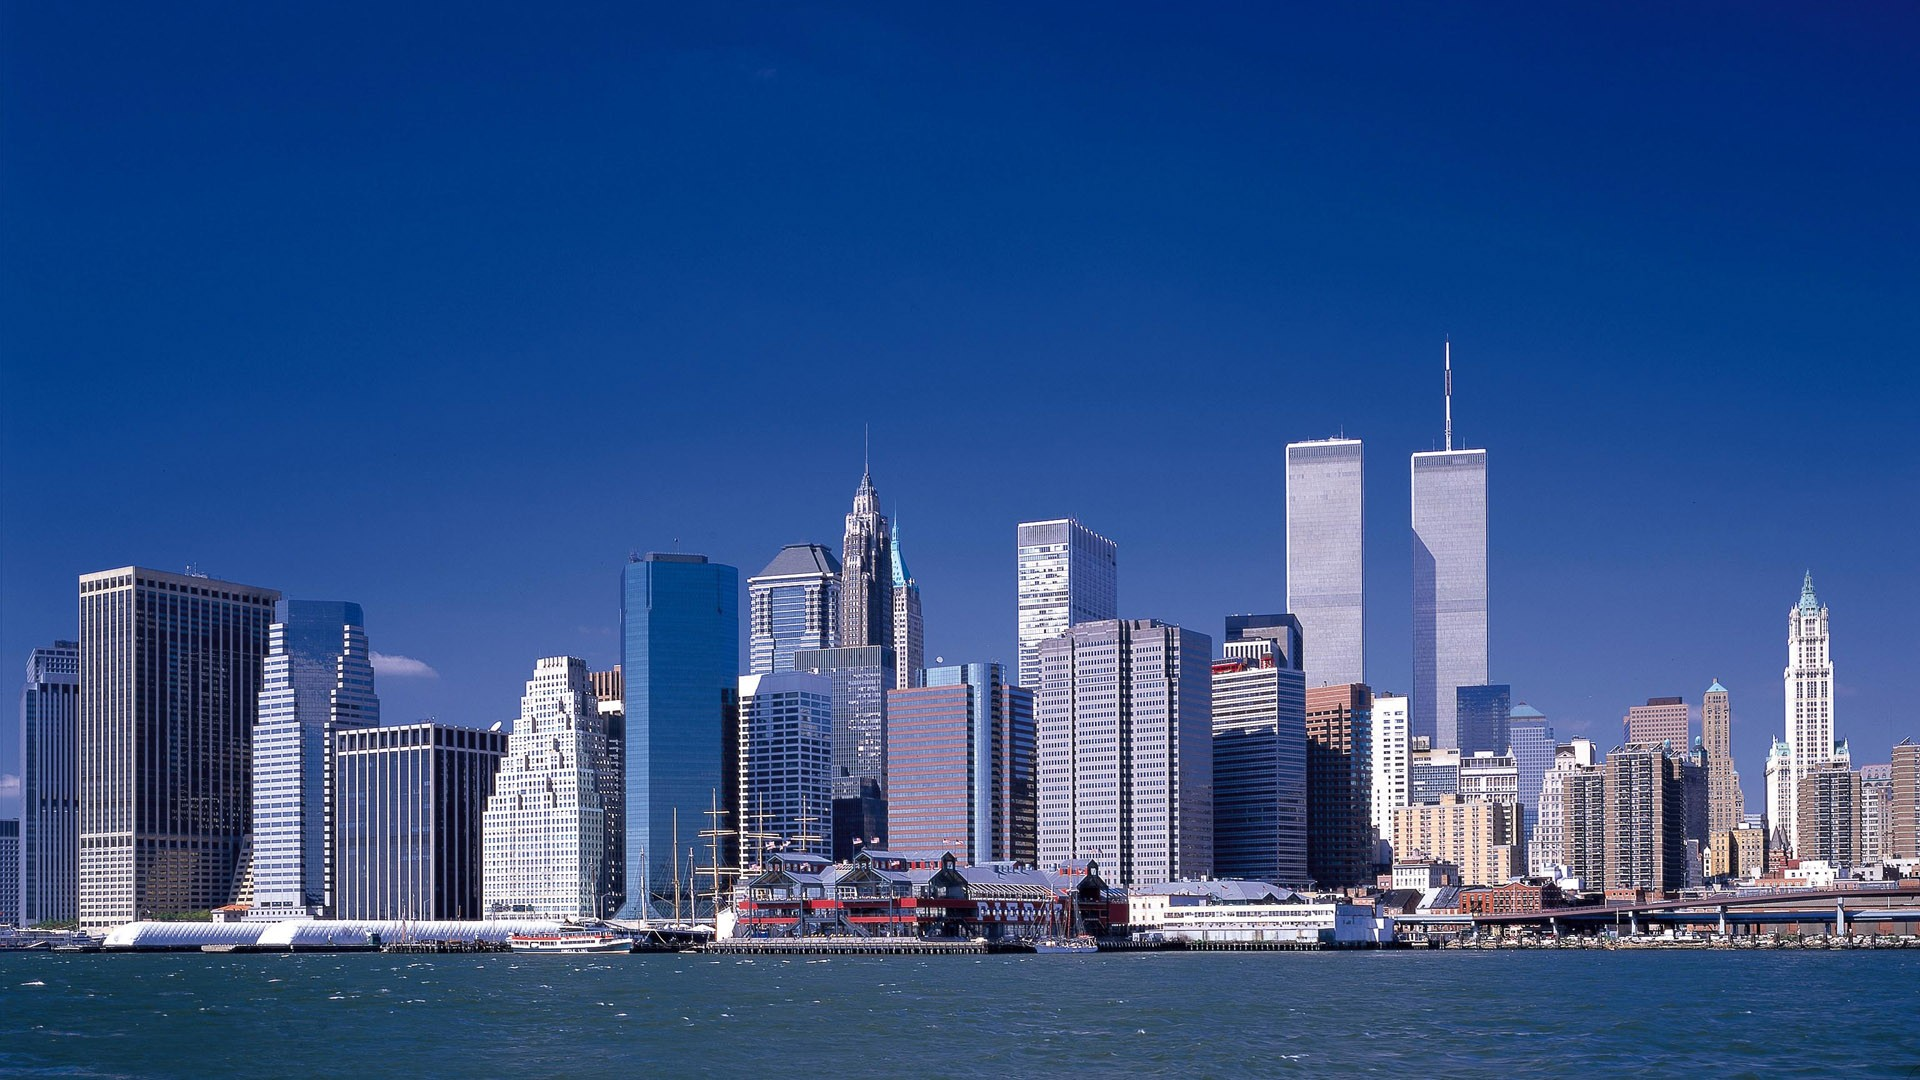 Includes new york twin towers differing in height overall harmony is